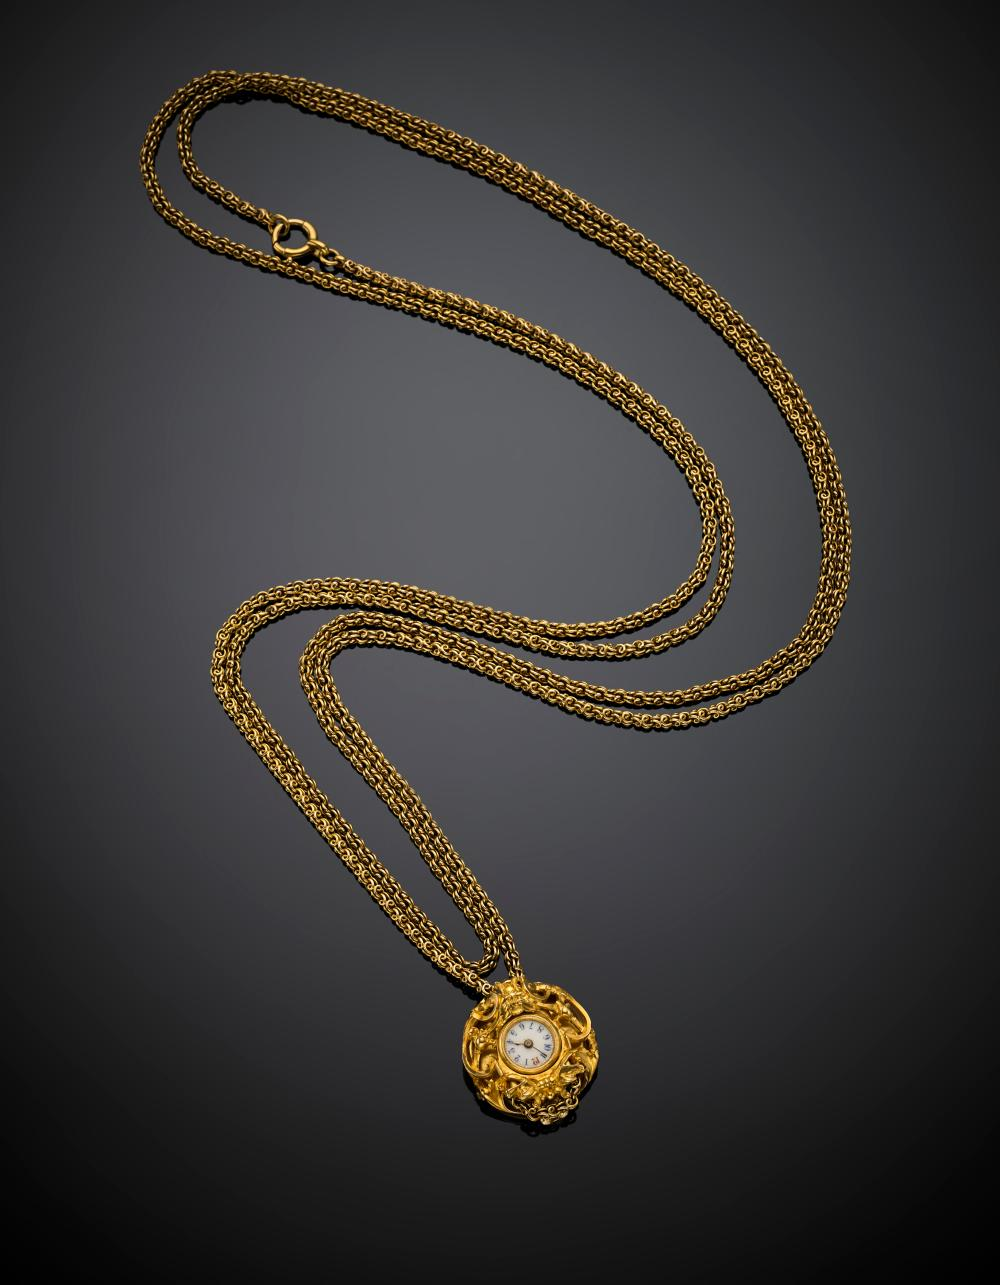 Yellow gold double chain holding a baroque pendant watch, g